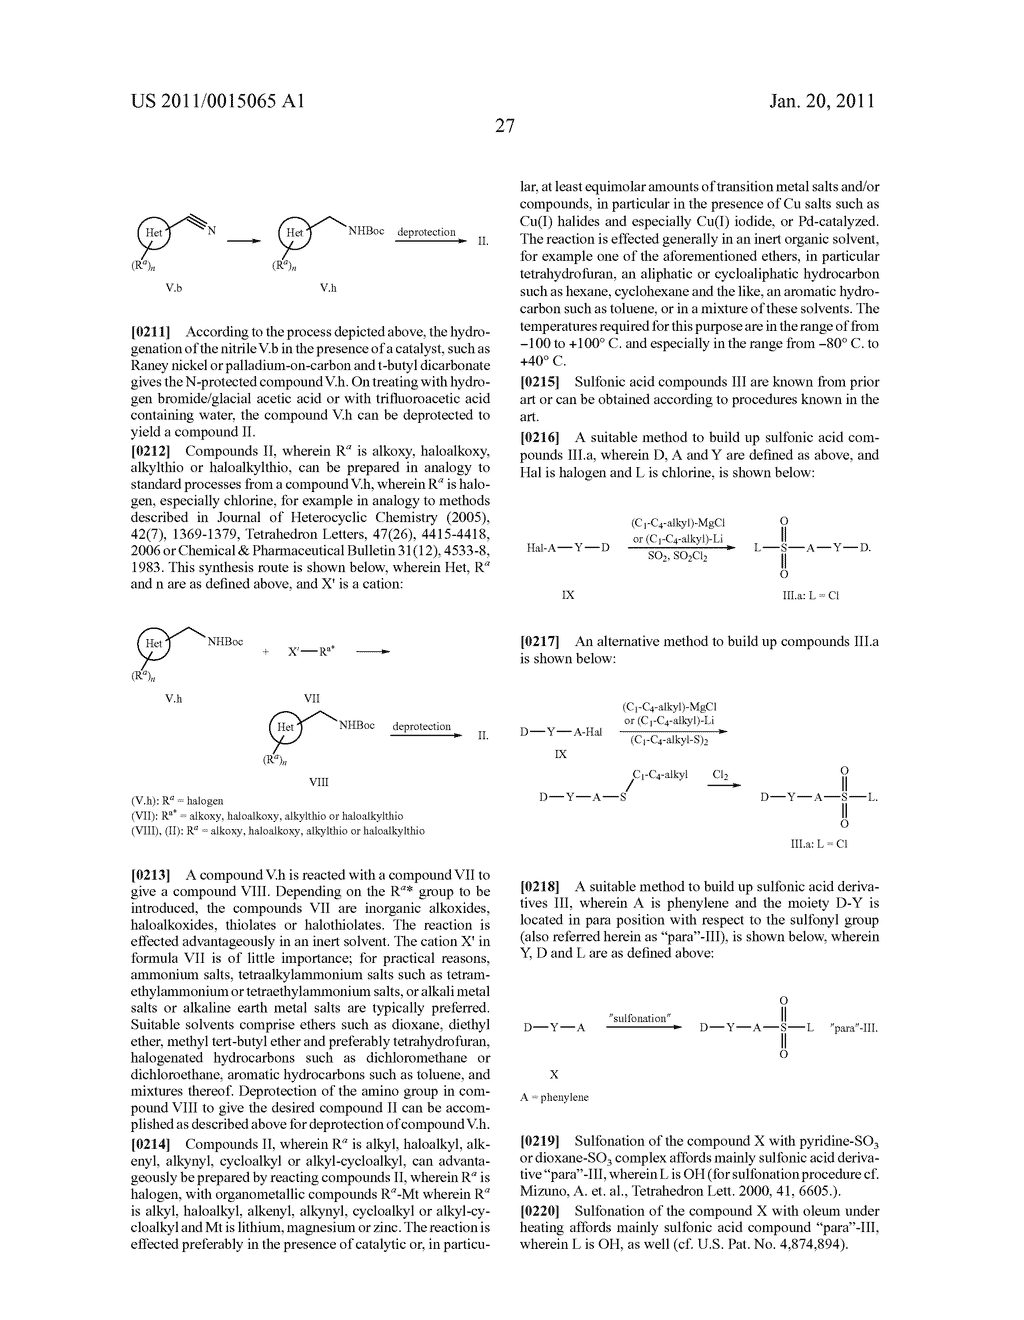 Substituted Sulfonic Acid Amide Compounds - diagram, schematic, and image 28